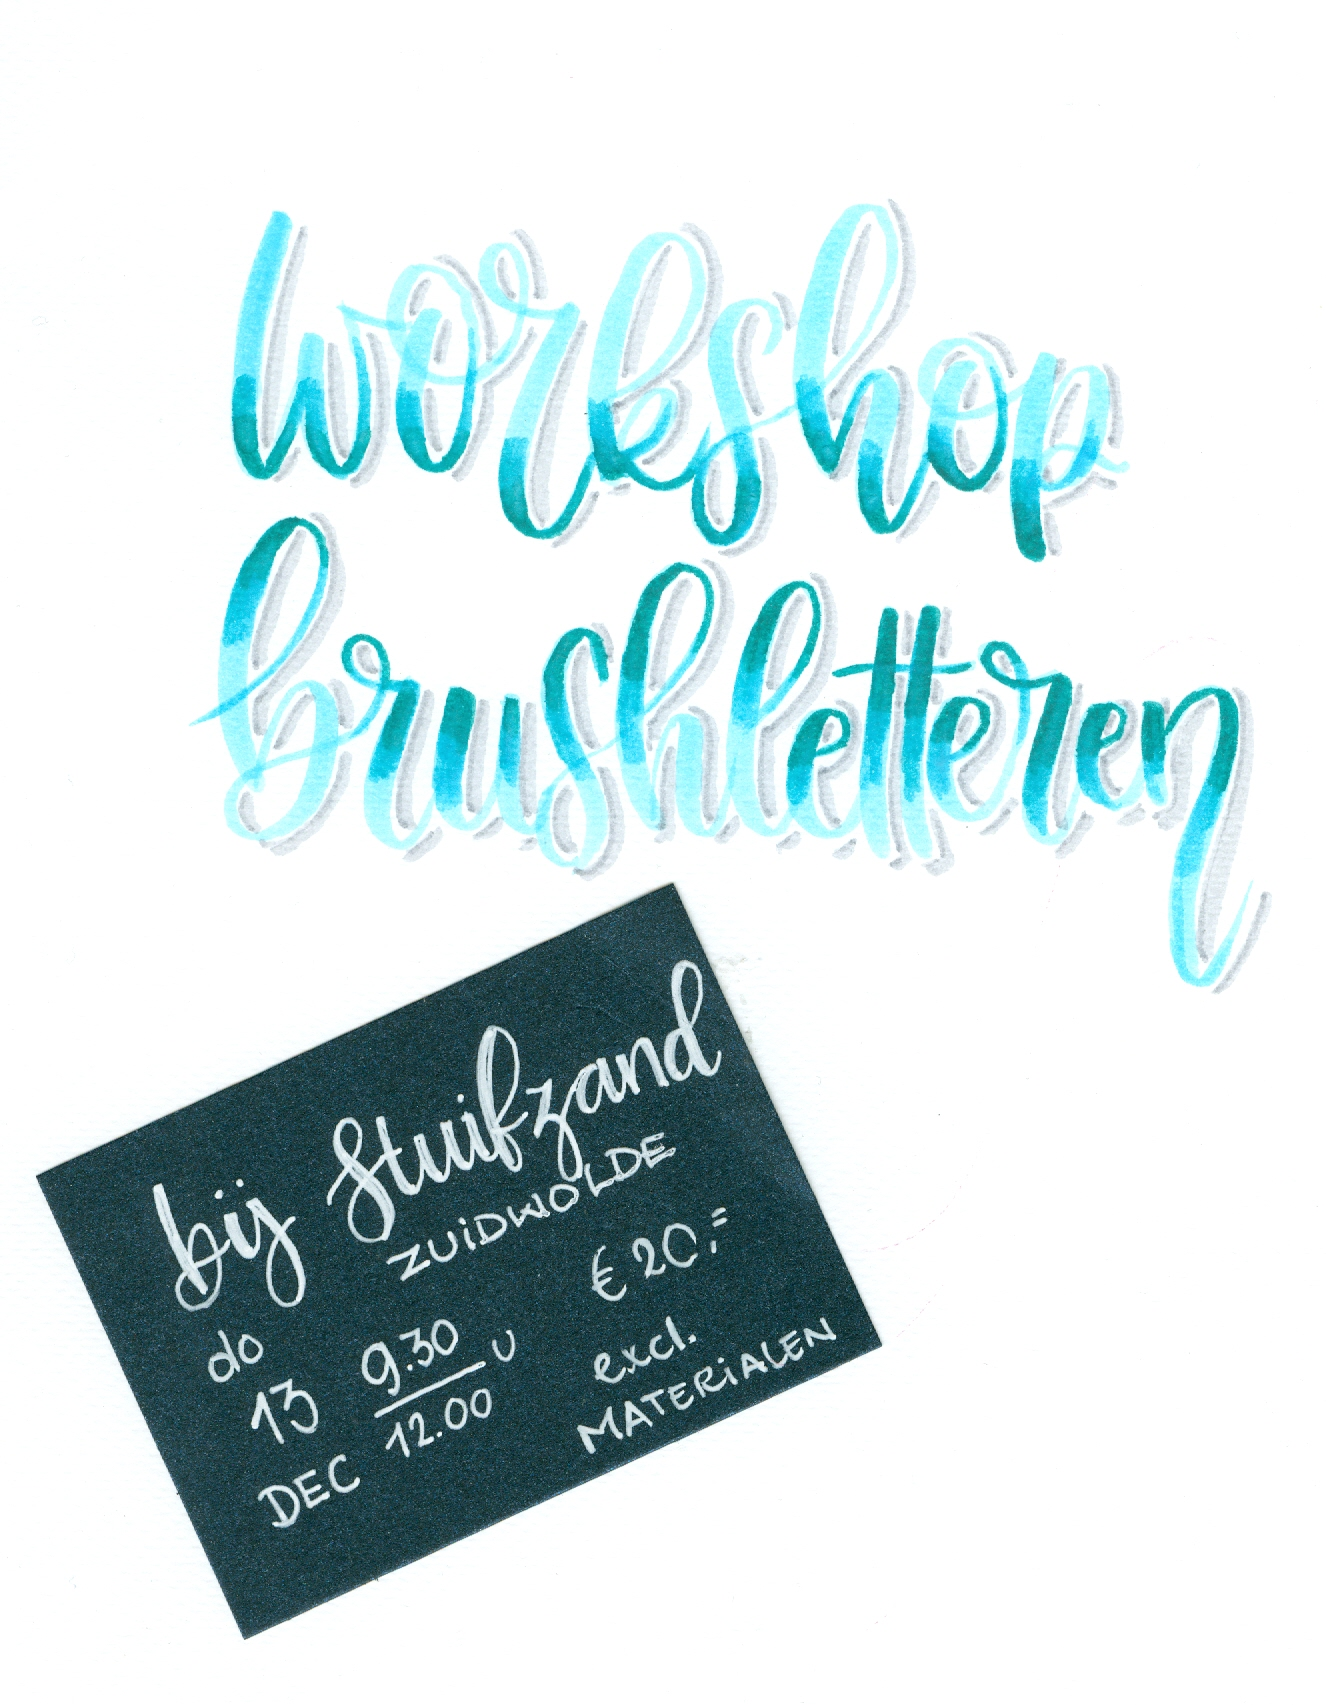 Workshop brushletteren